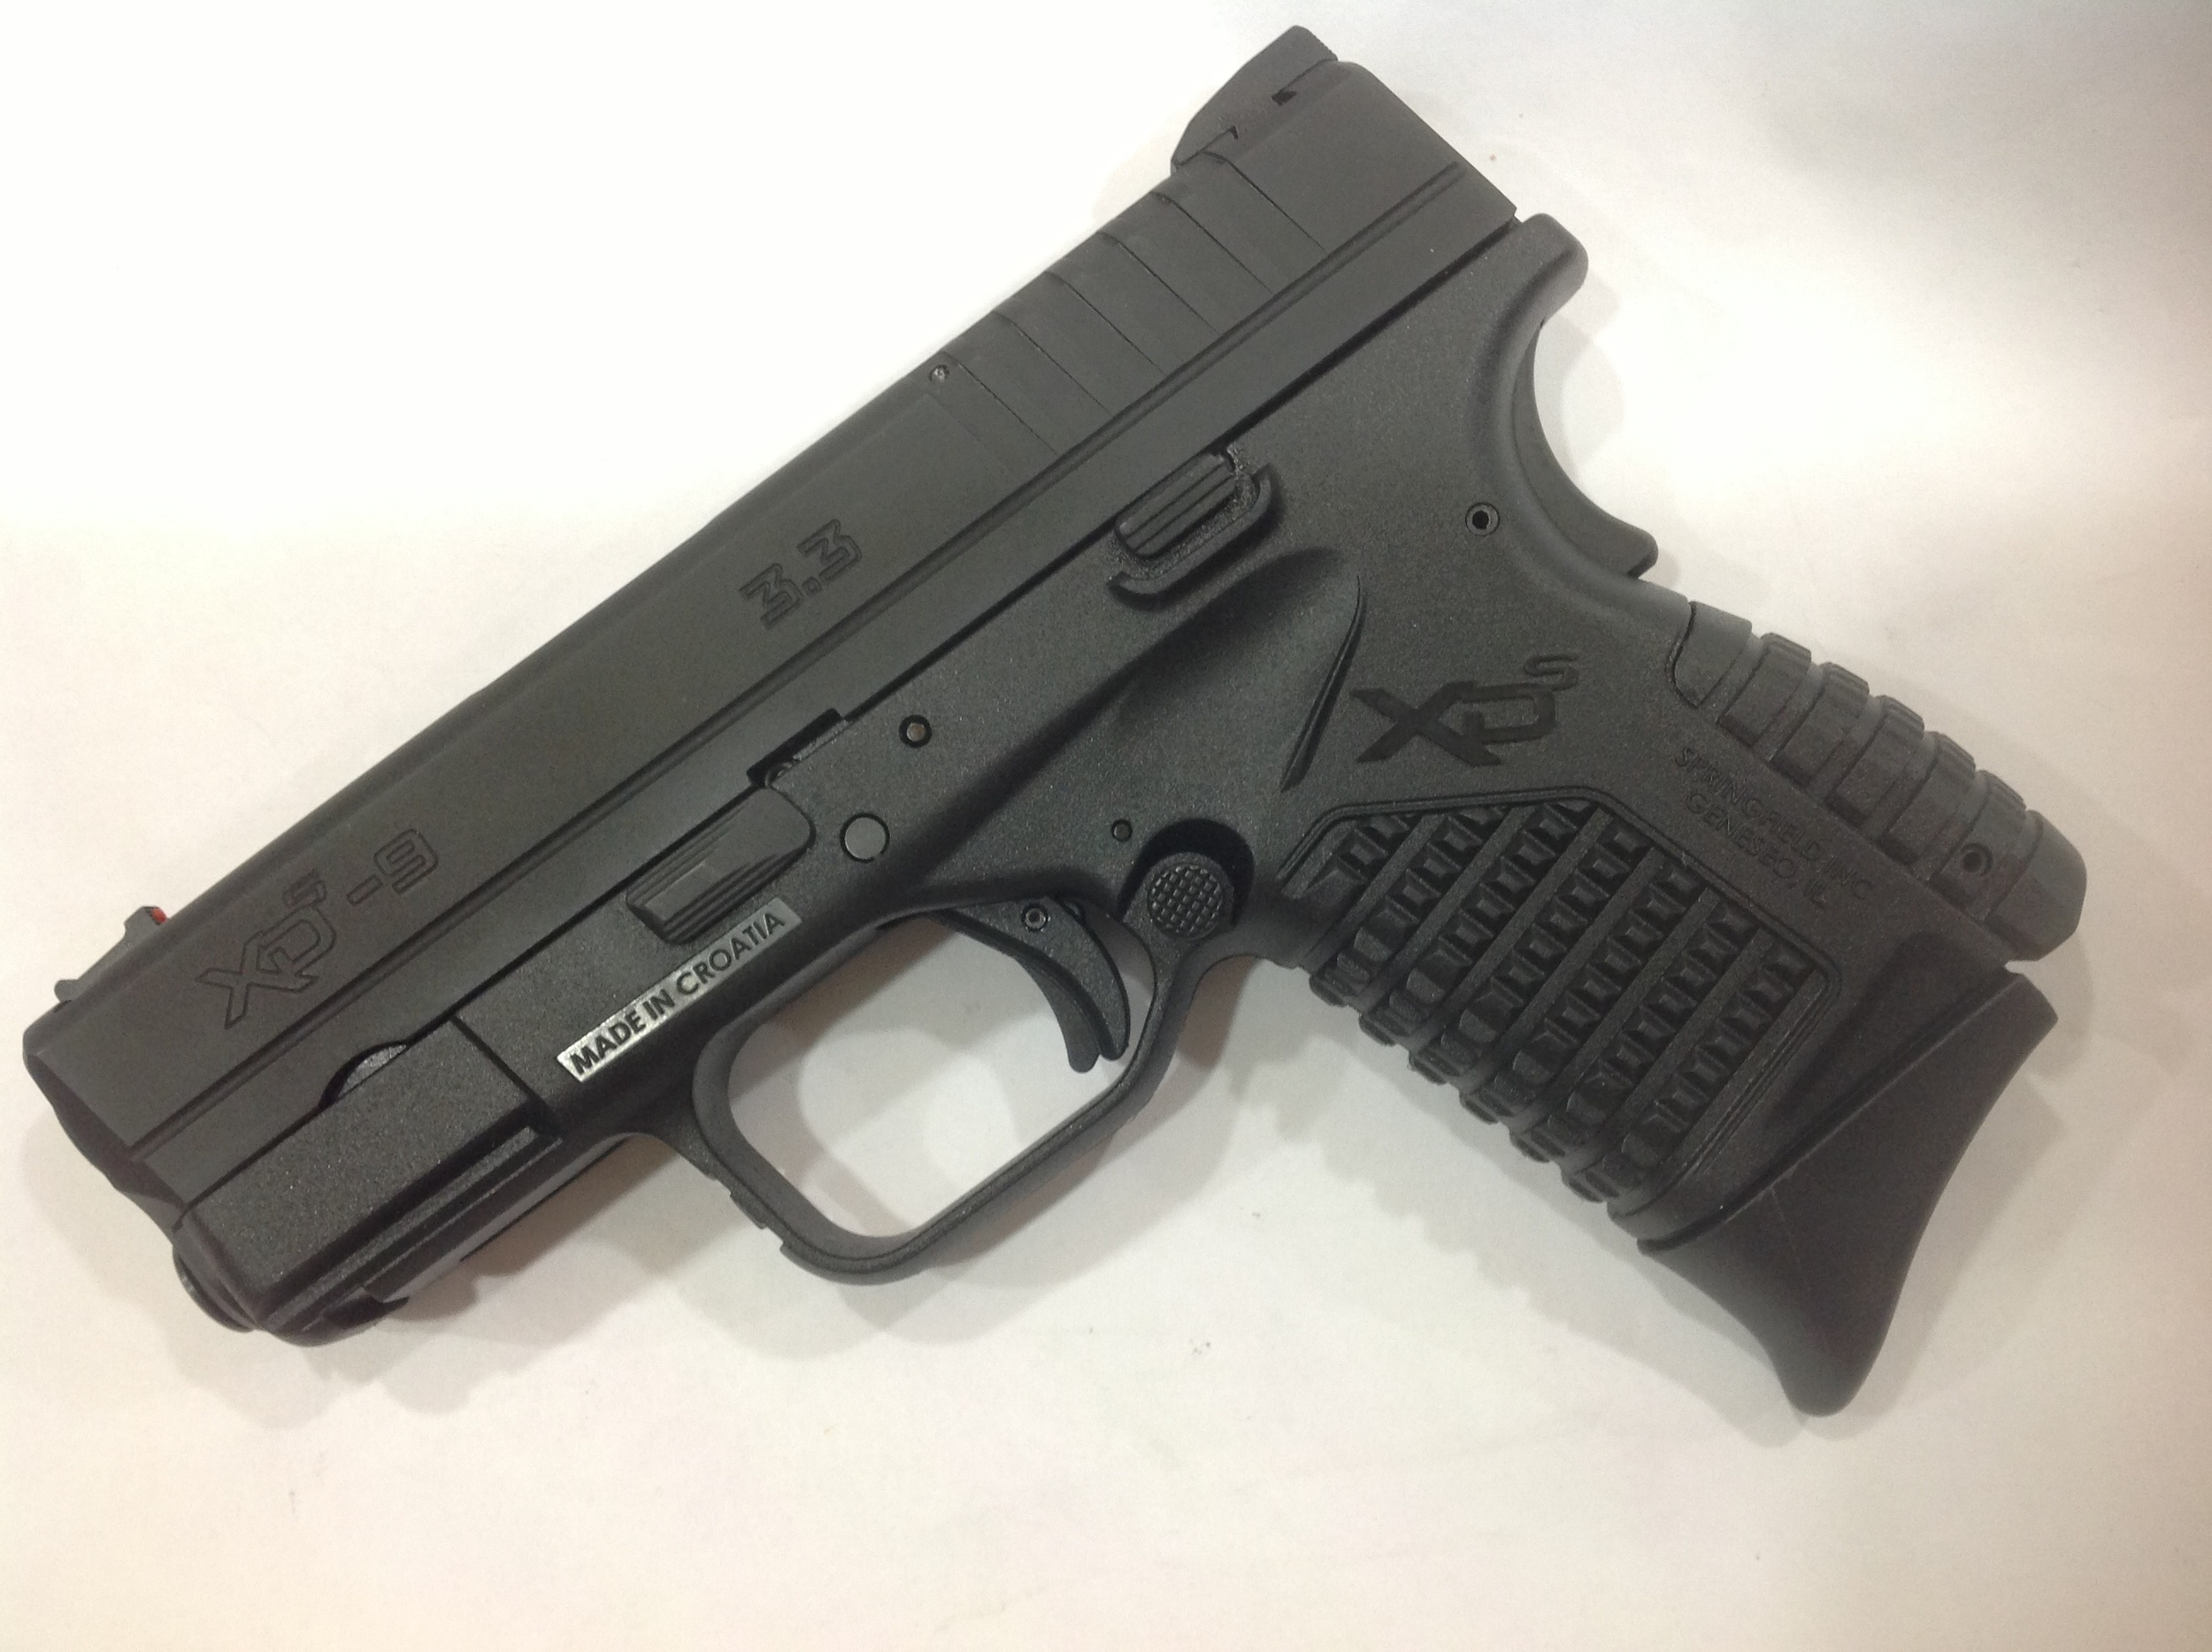 The current Pearce grip for the 45acp XDS installed on the 9mm XDS. It looks like it was specifically made for it.